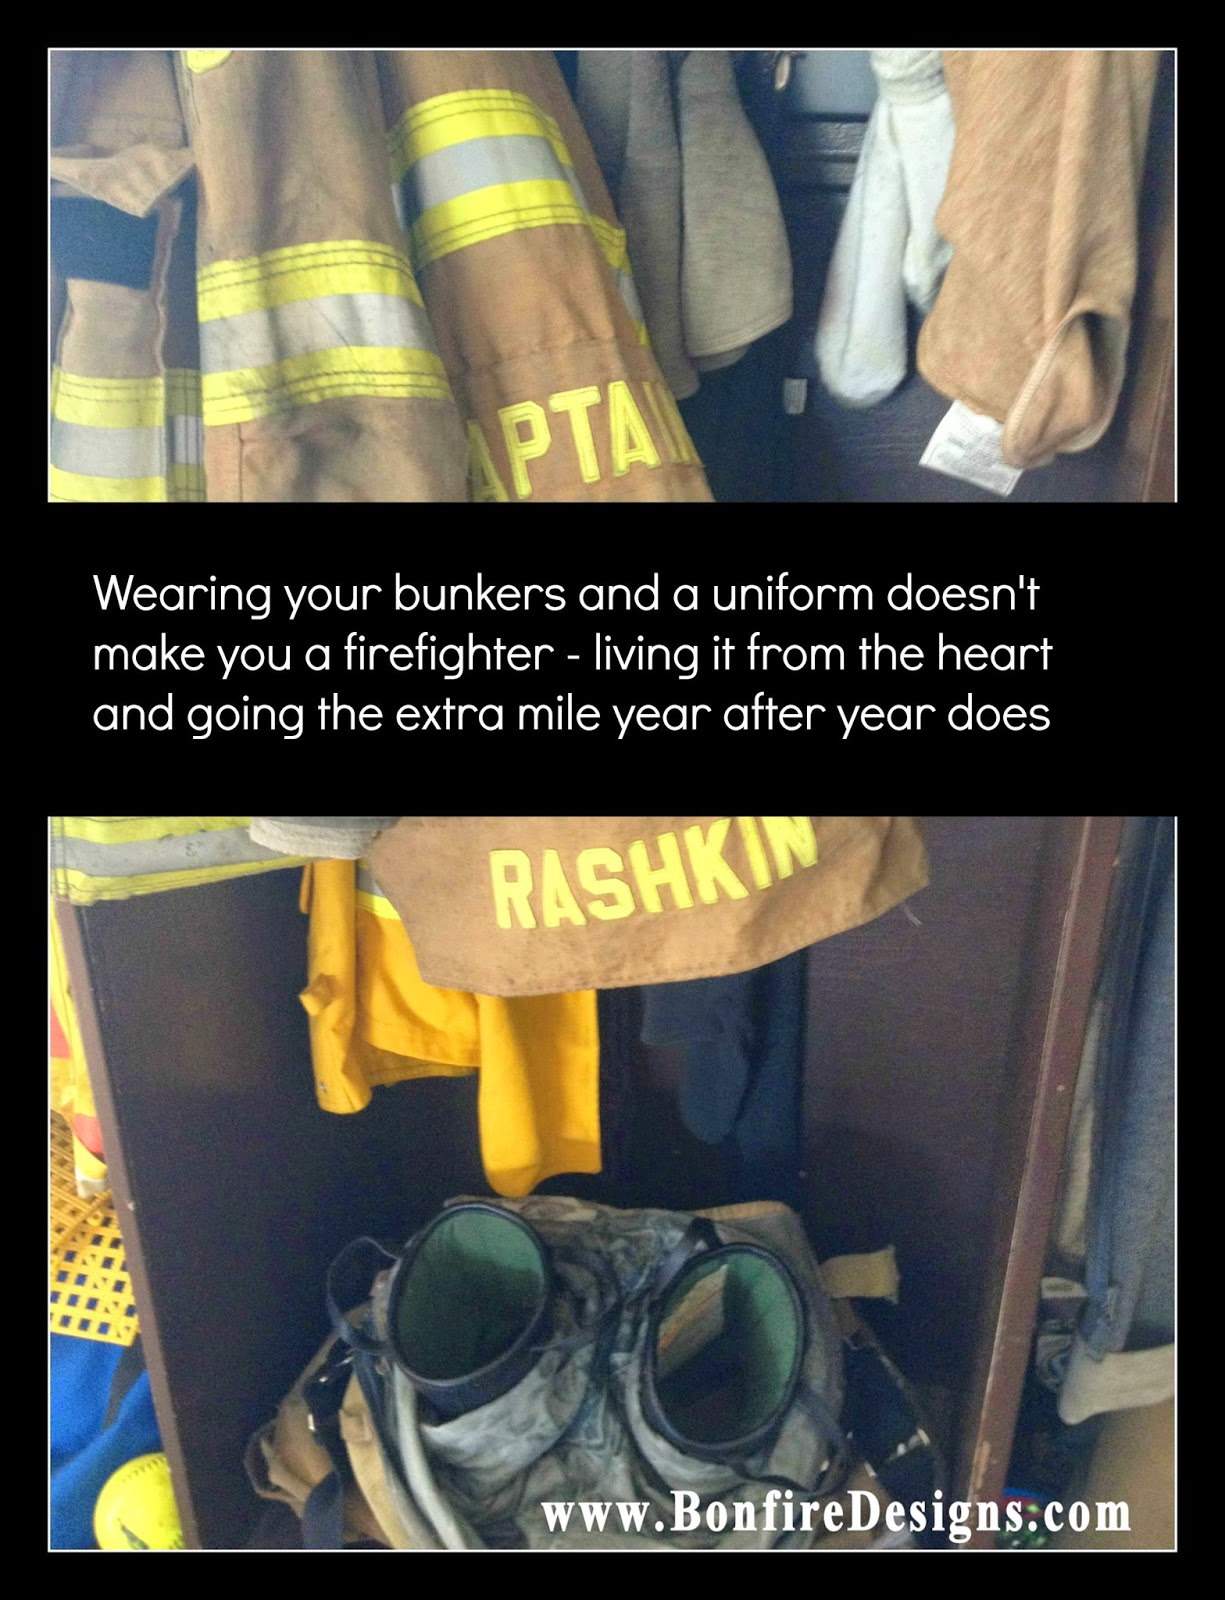 Firefighters Bunker Gear Doesn't Make You A Firefighter